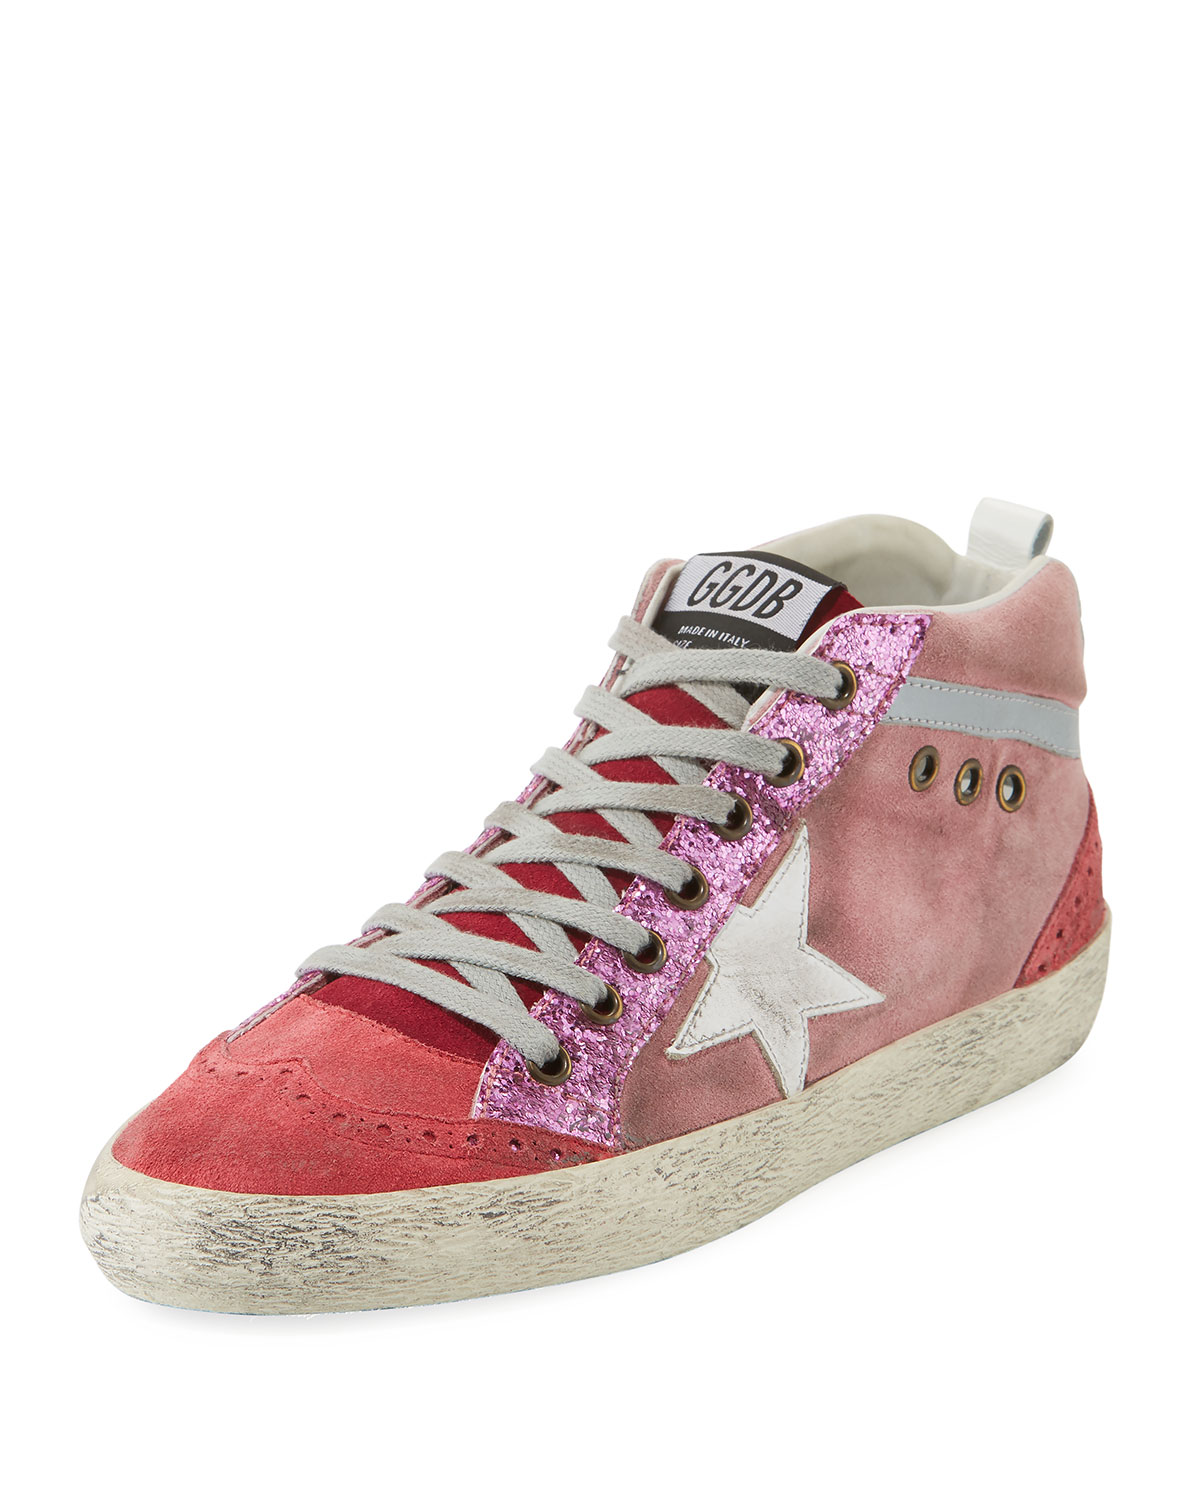 eb14caee72f98 Golden Goose Mid-Top Star Glitter Sneakers